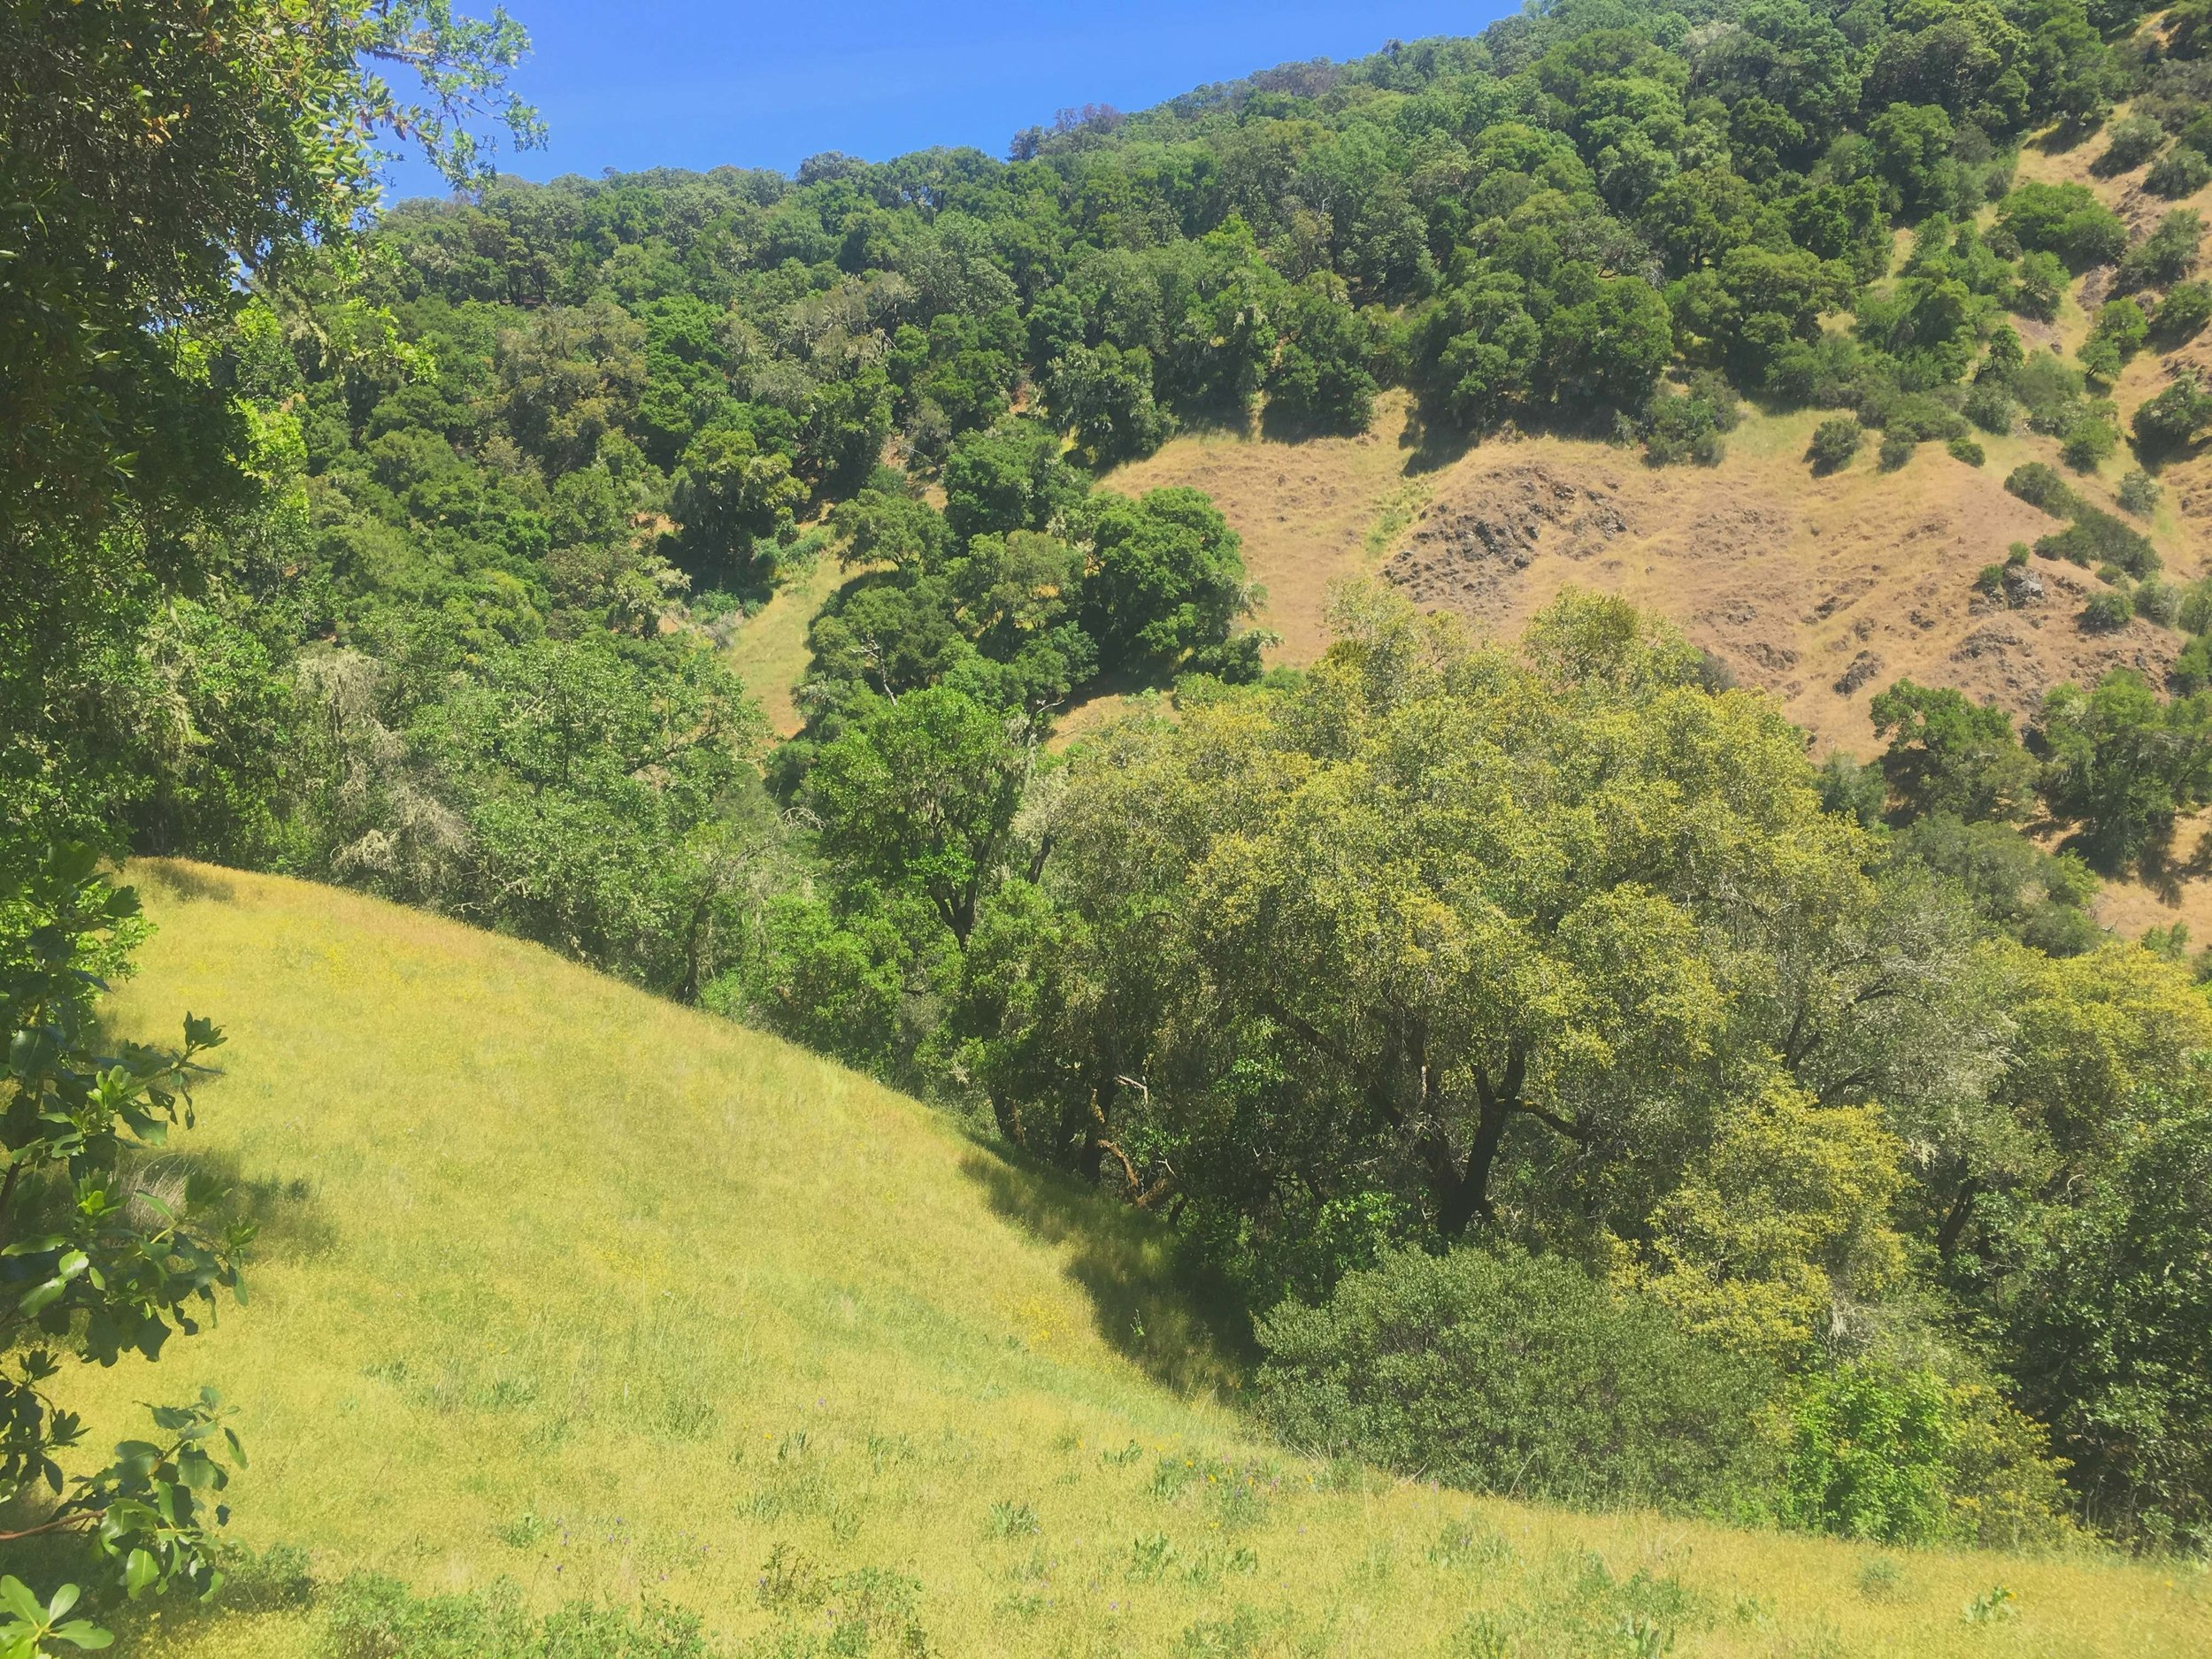 Beauty abounds on 40ac ranch near Hopland and Anderson Valley, California.